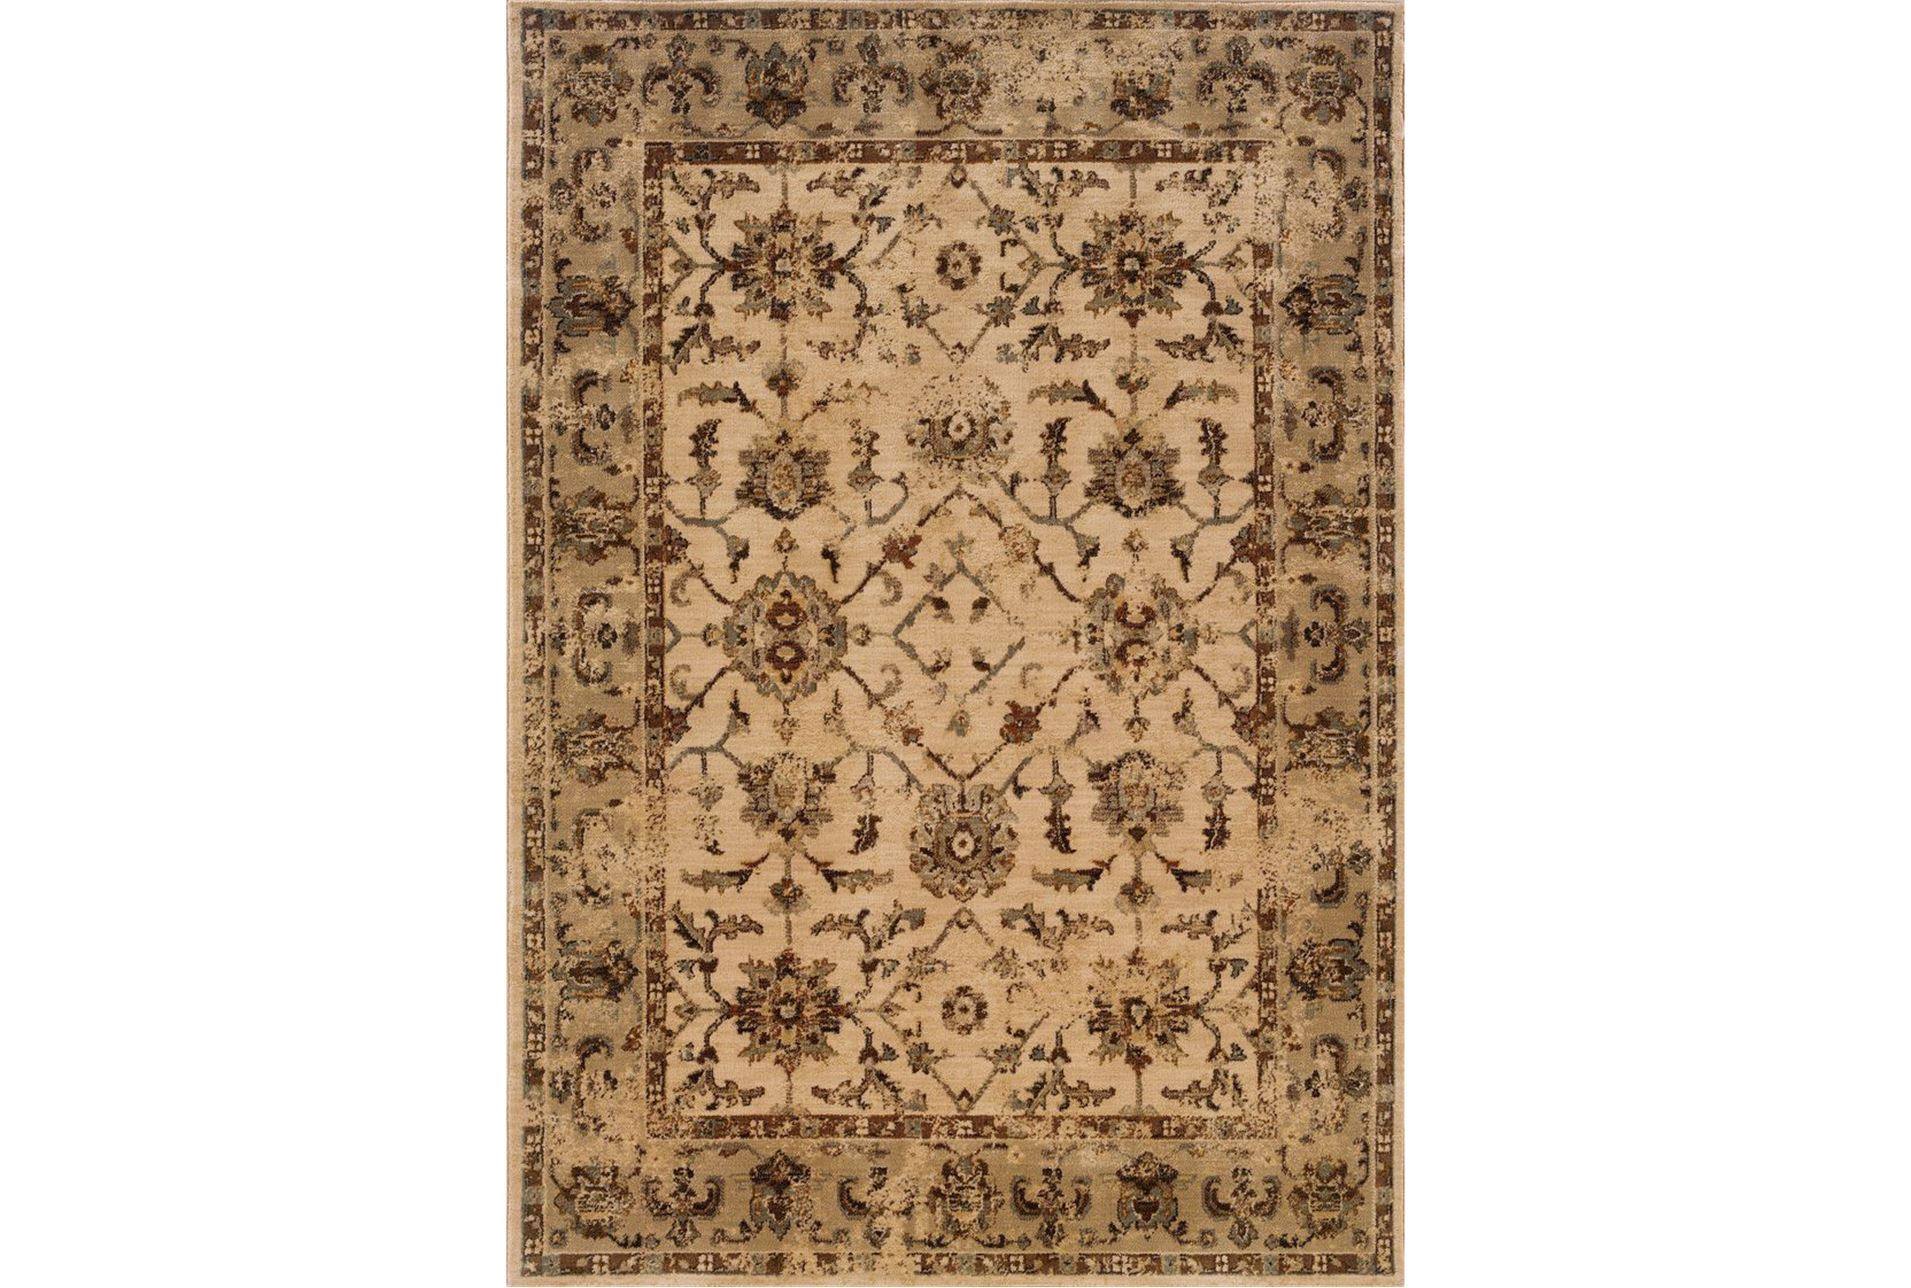 94x130 rug traditions autumn living spaces for Living spaces rugs